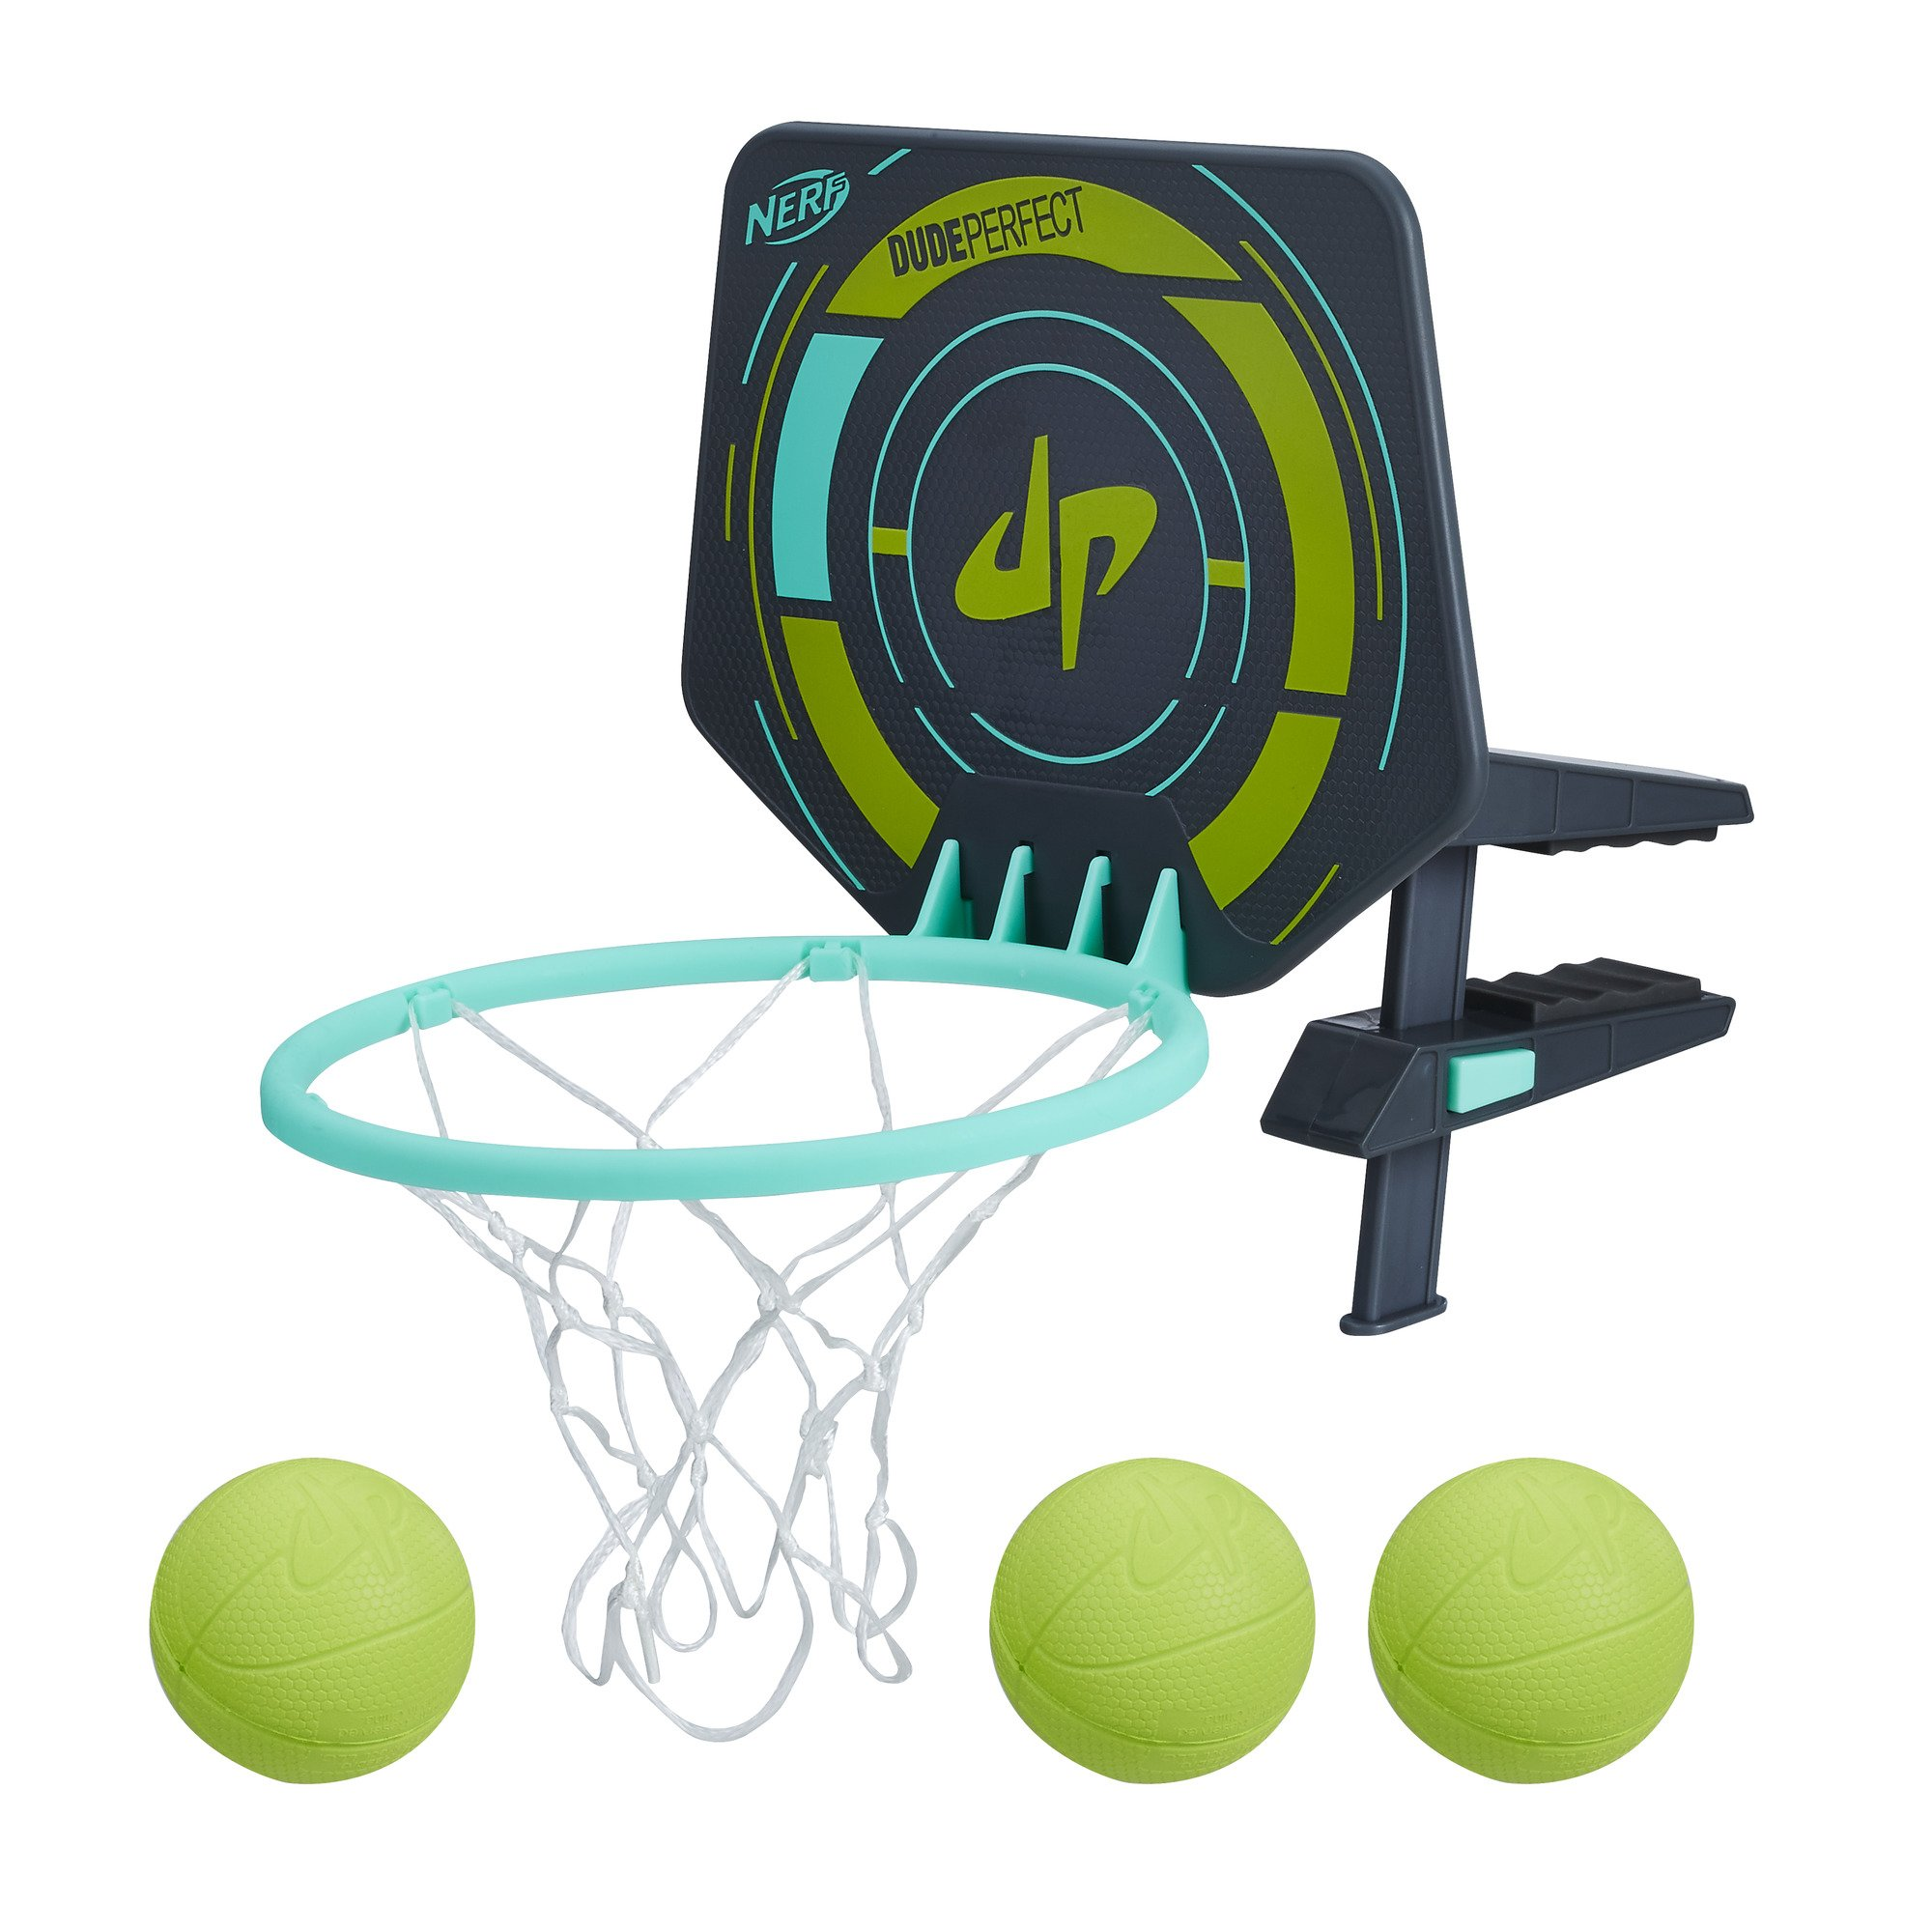 Nerf Sports Dude Perfect Mini PerfectShot Hoop by NERF